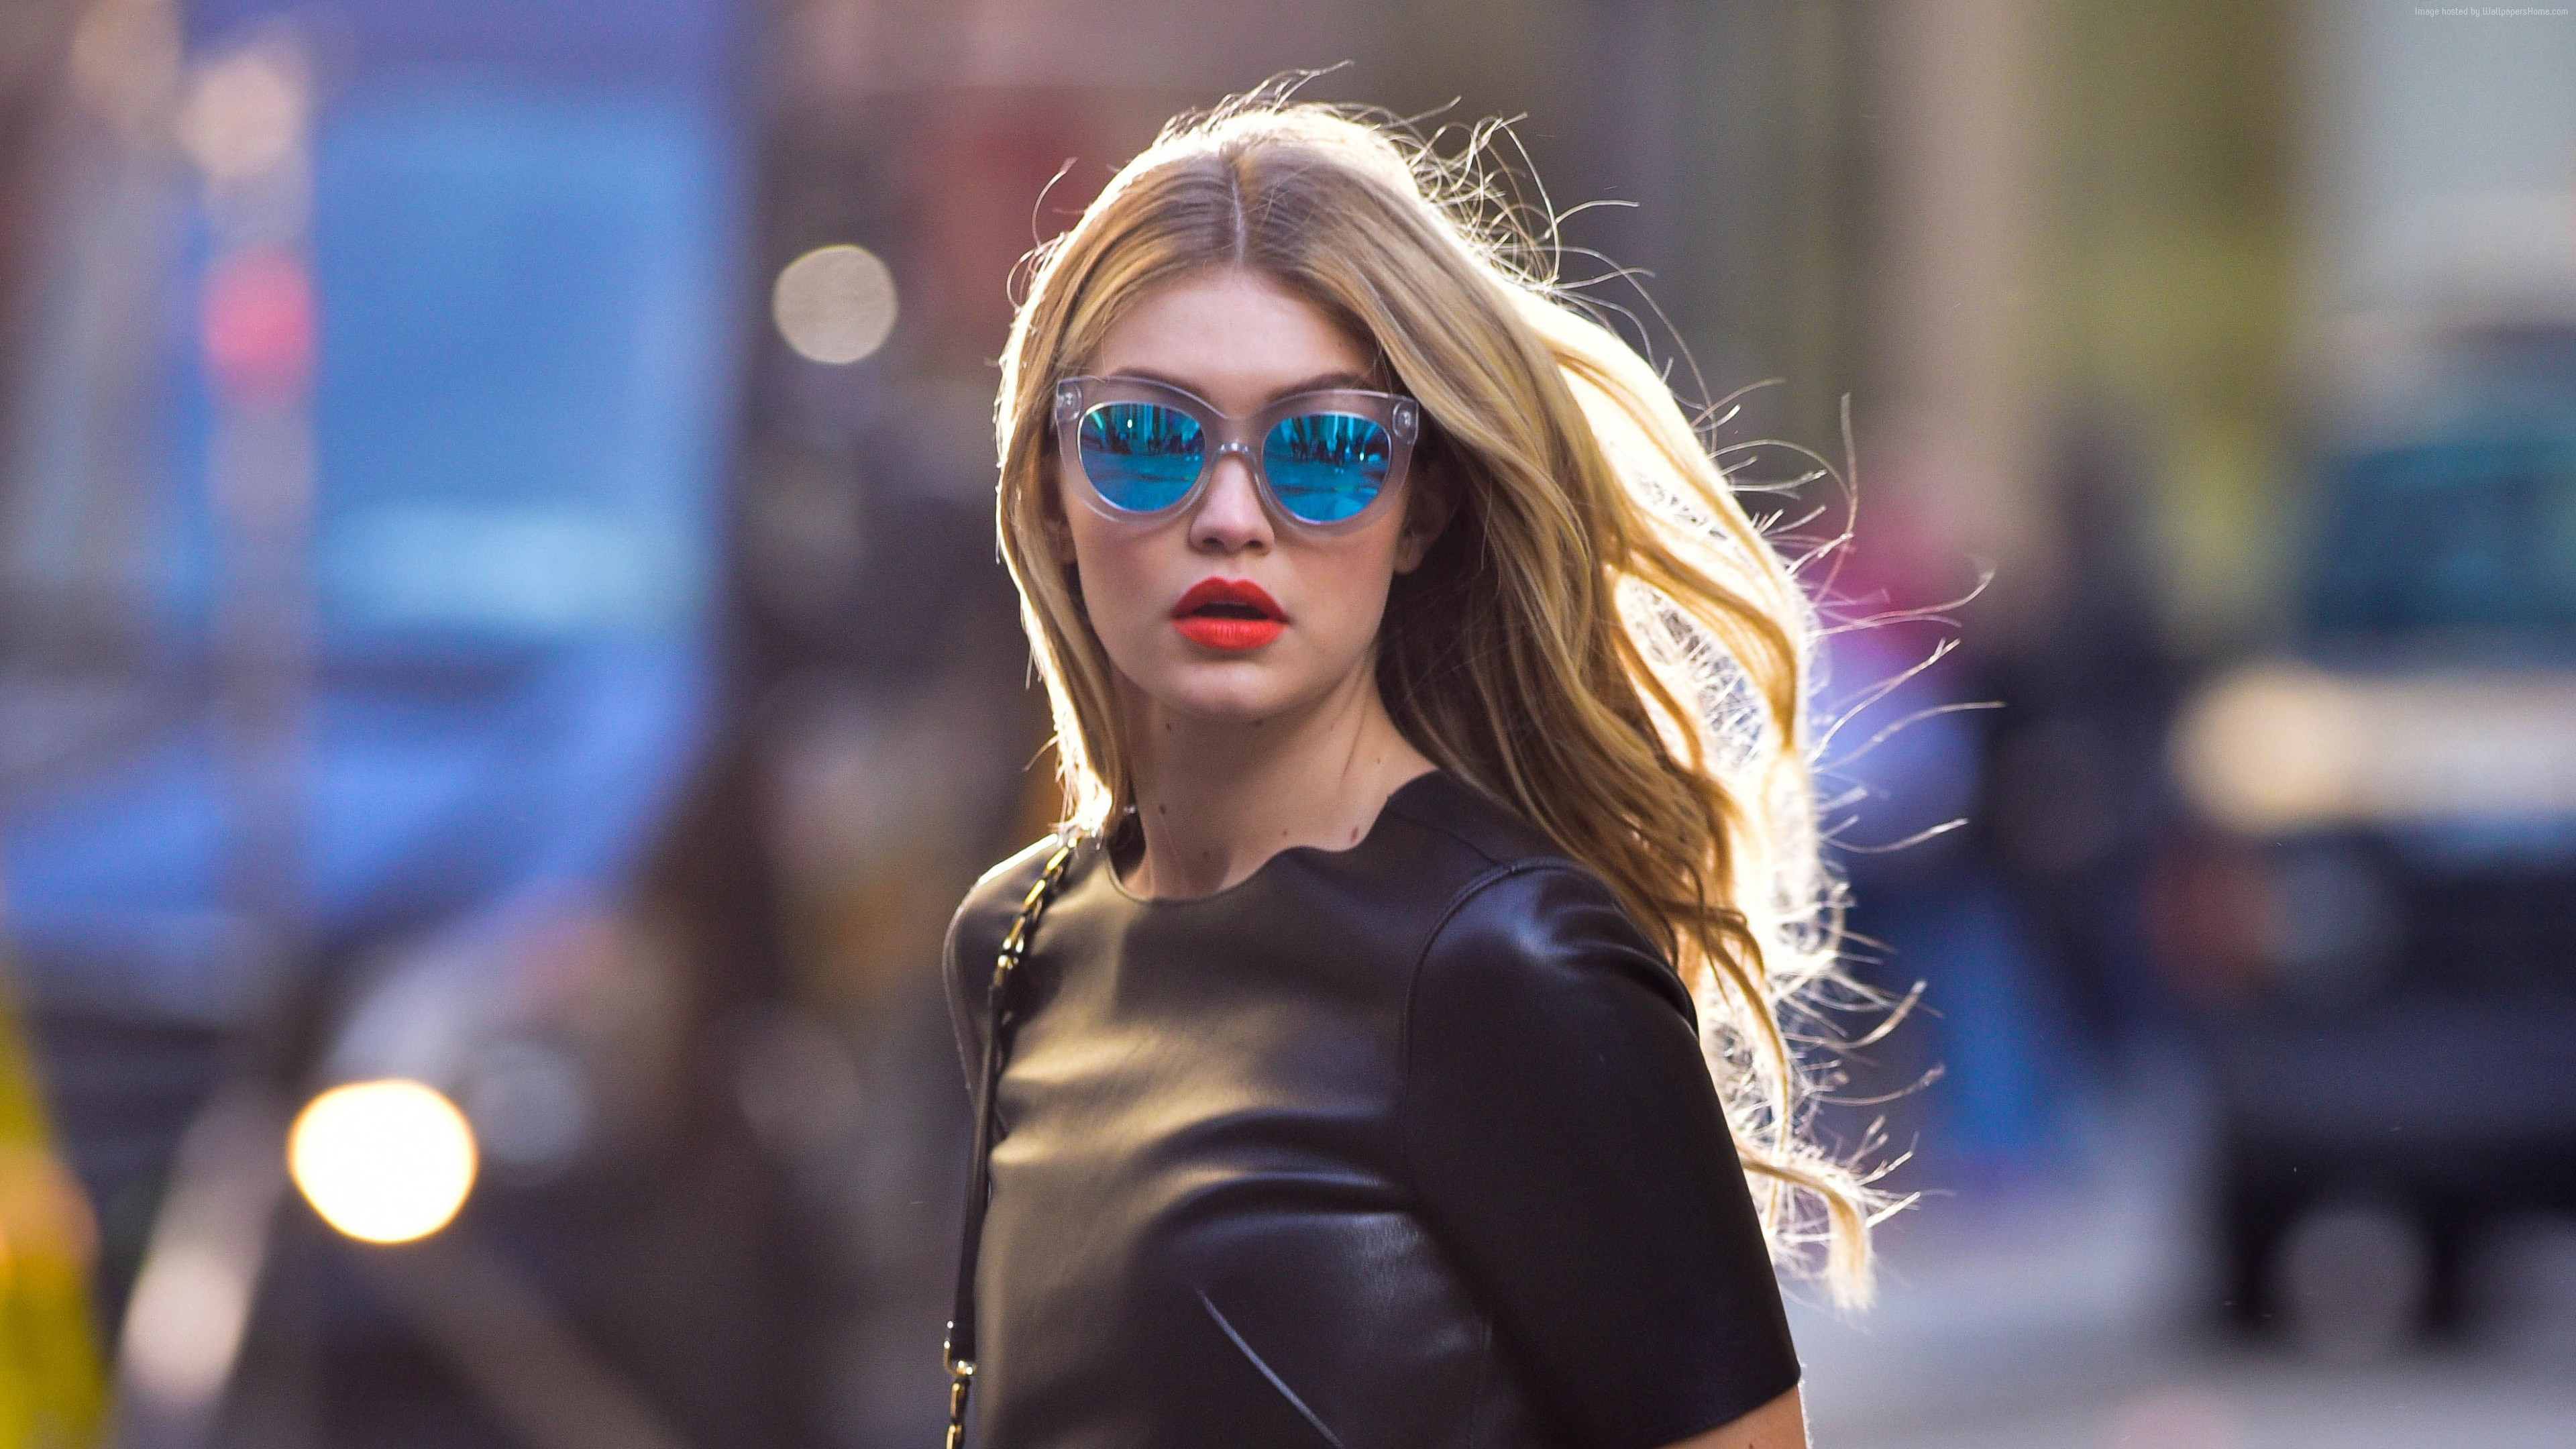 Wallpaper Gigi Hadid, beauty, 4k, Girls